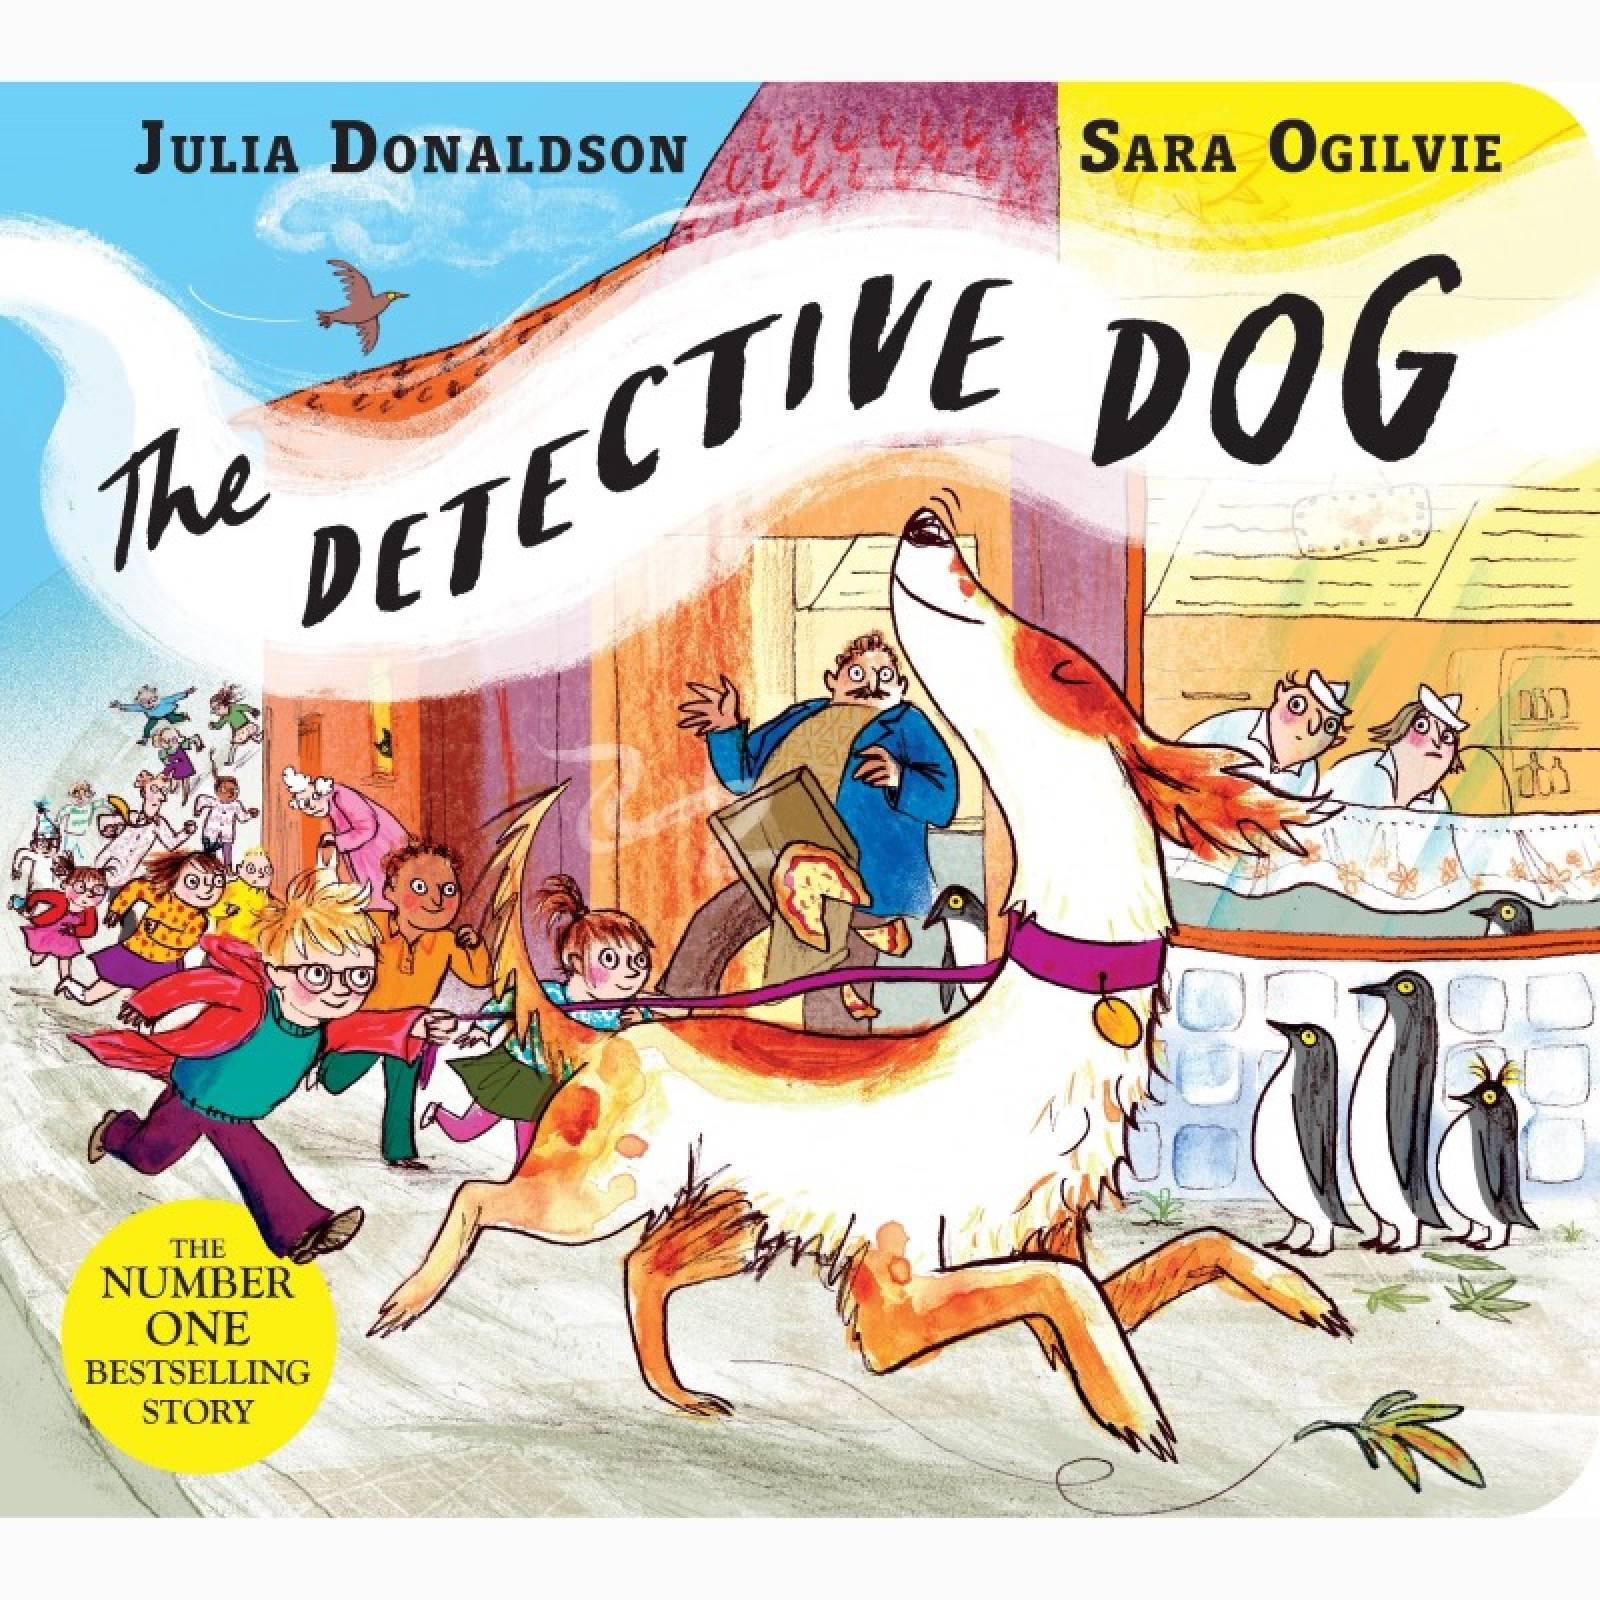 The Detective Dog - Board Book